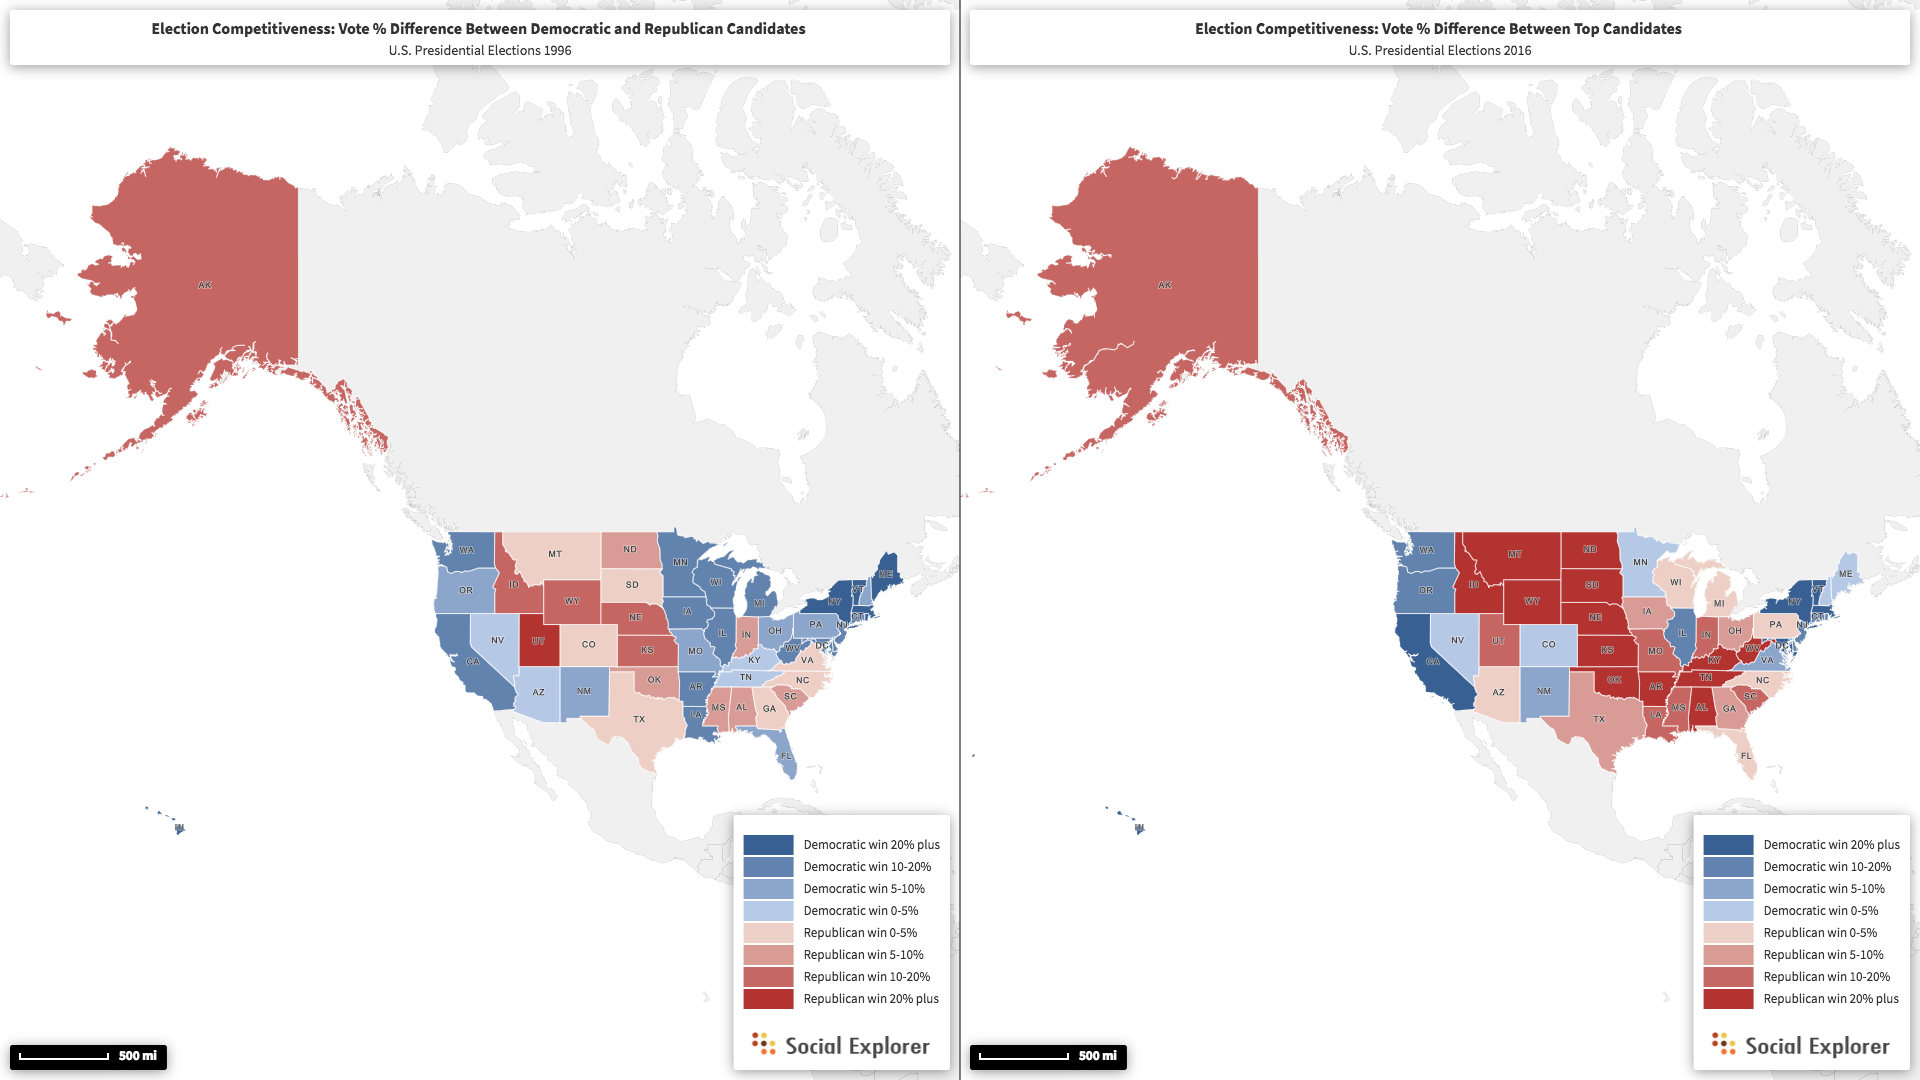 Election Competitiveness | Research Data Services Blog